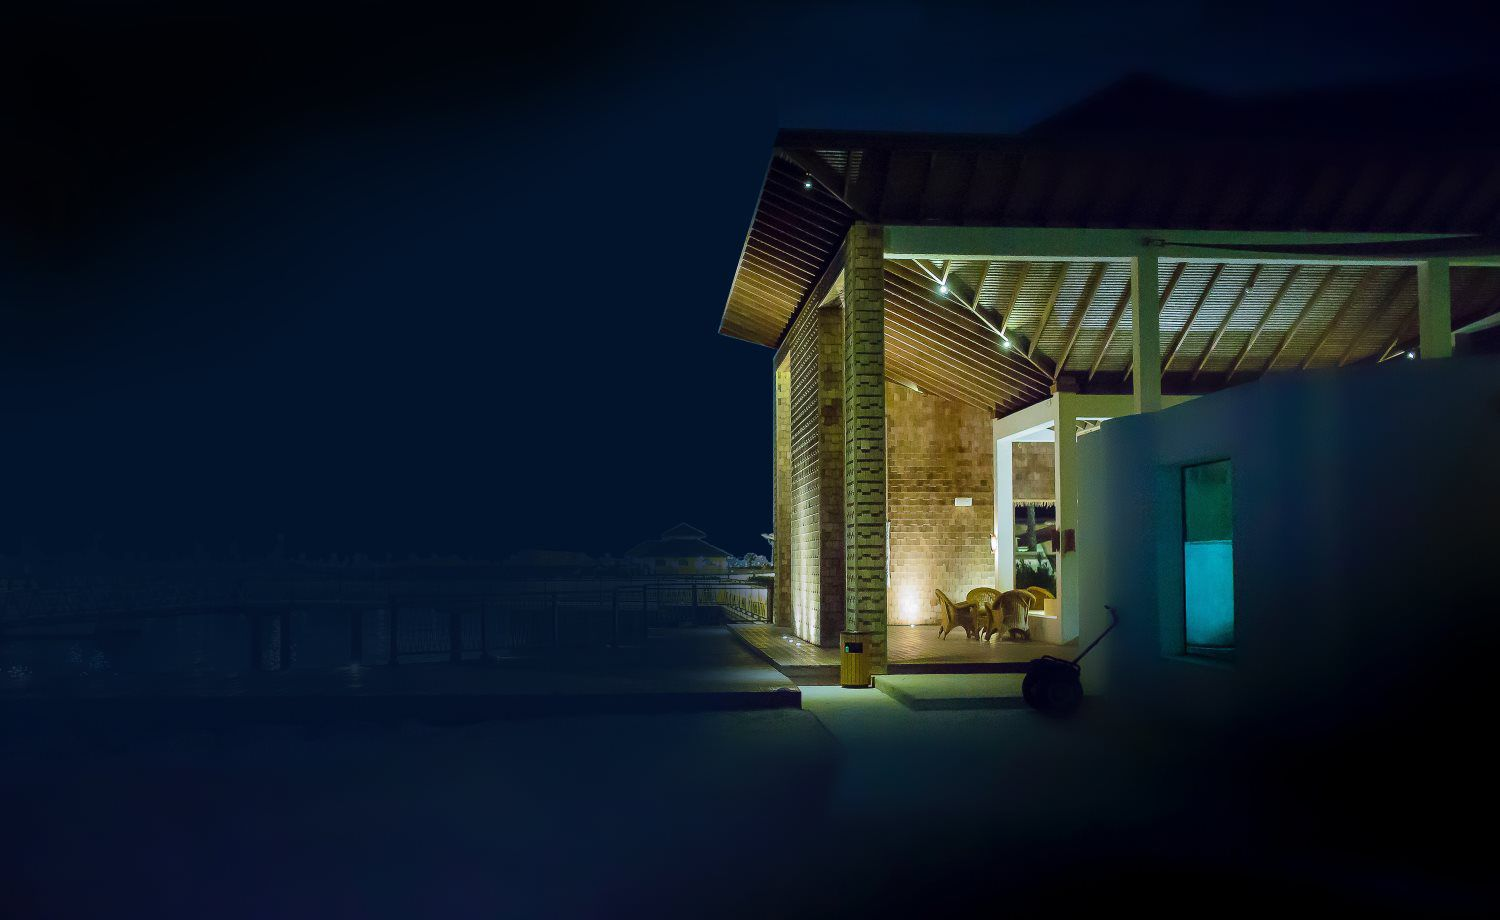 house by night